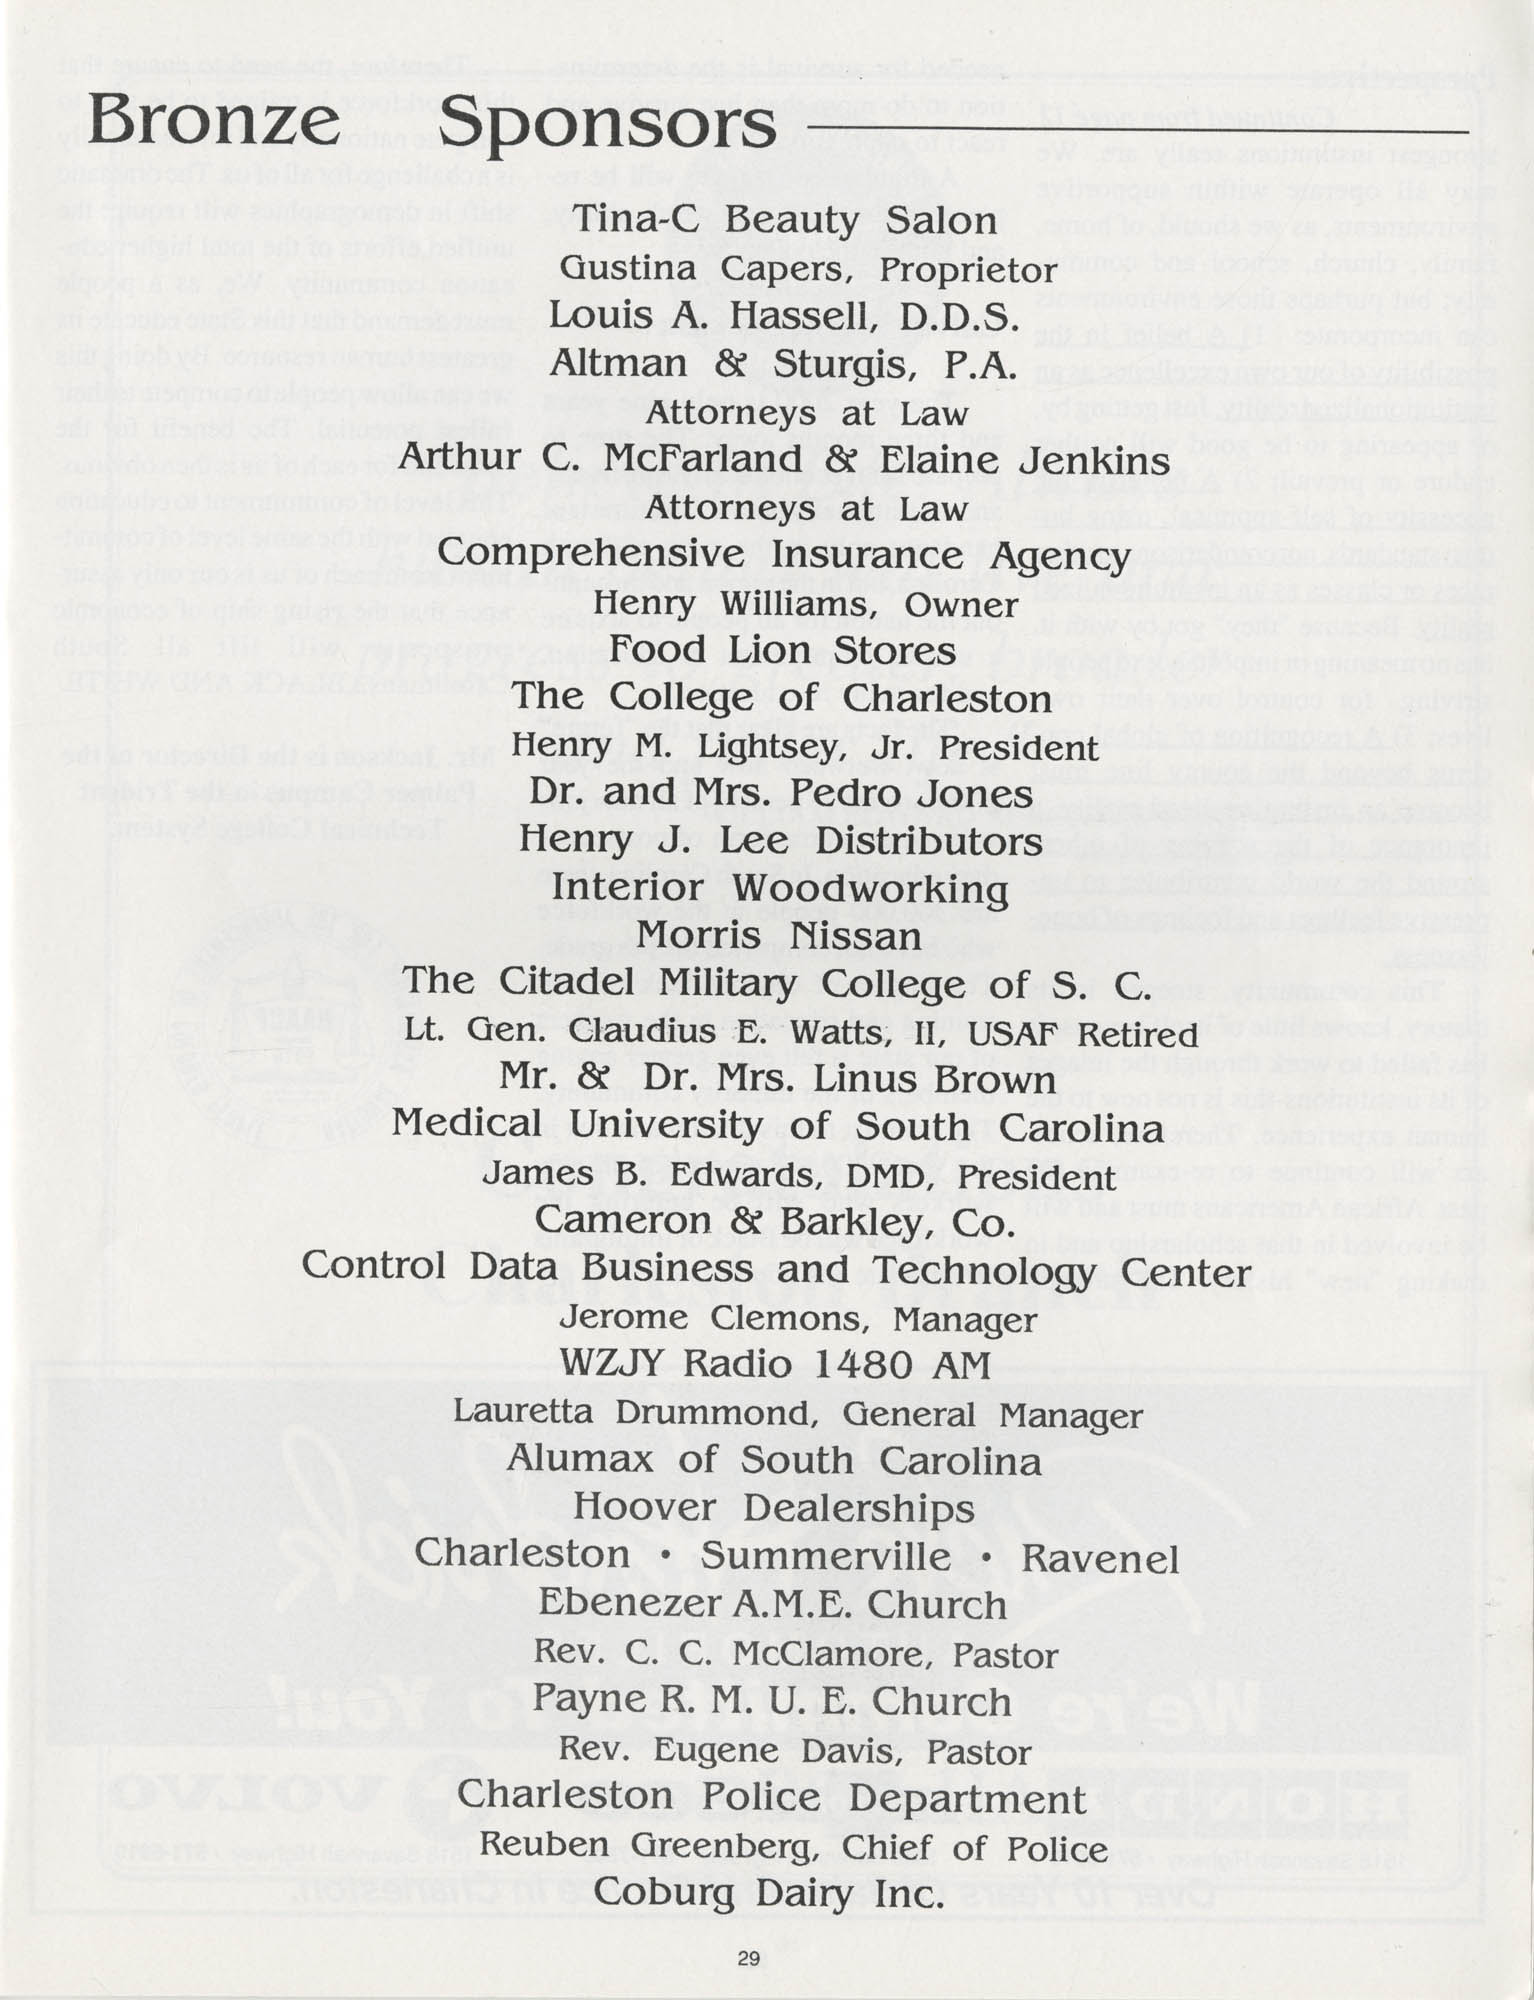 1990 NAACP Freedom Fund Magazine, Charleston Branch of the NAACP, 74th Anniversary, Page 29